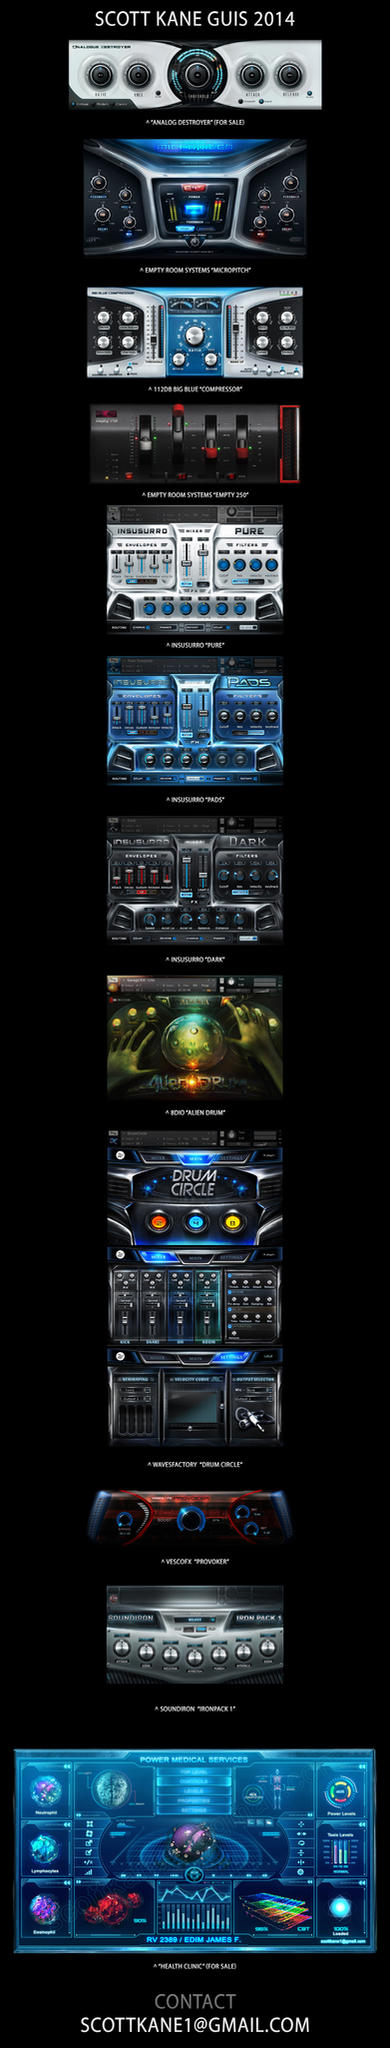 Extreme User Interface Design 2014 by ScottKaneGUIs